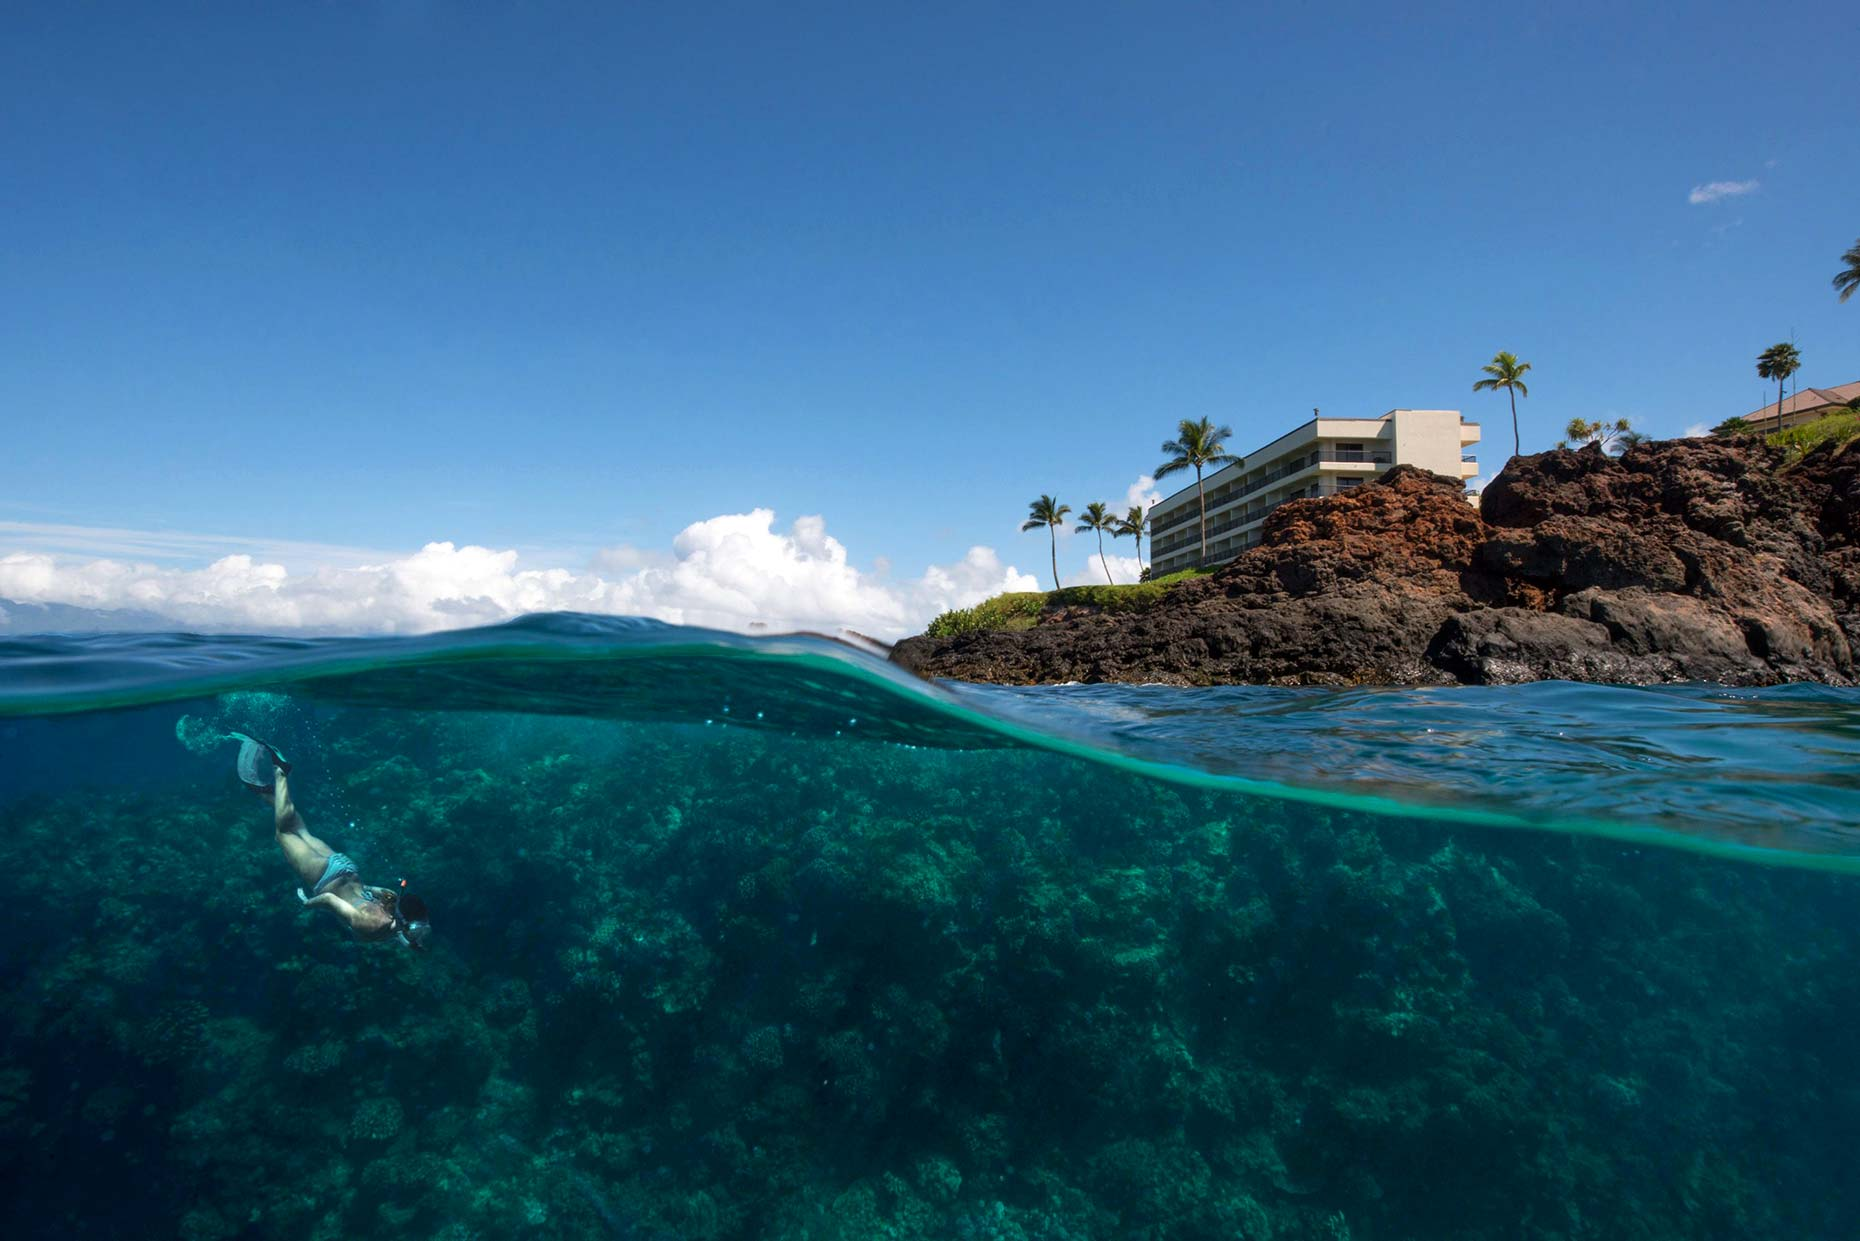 Ian-Coble-Beach-Lifestyle-Resort-Hawaii-Maui-Underwater-Snorkeling-2